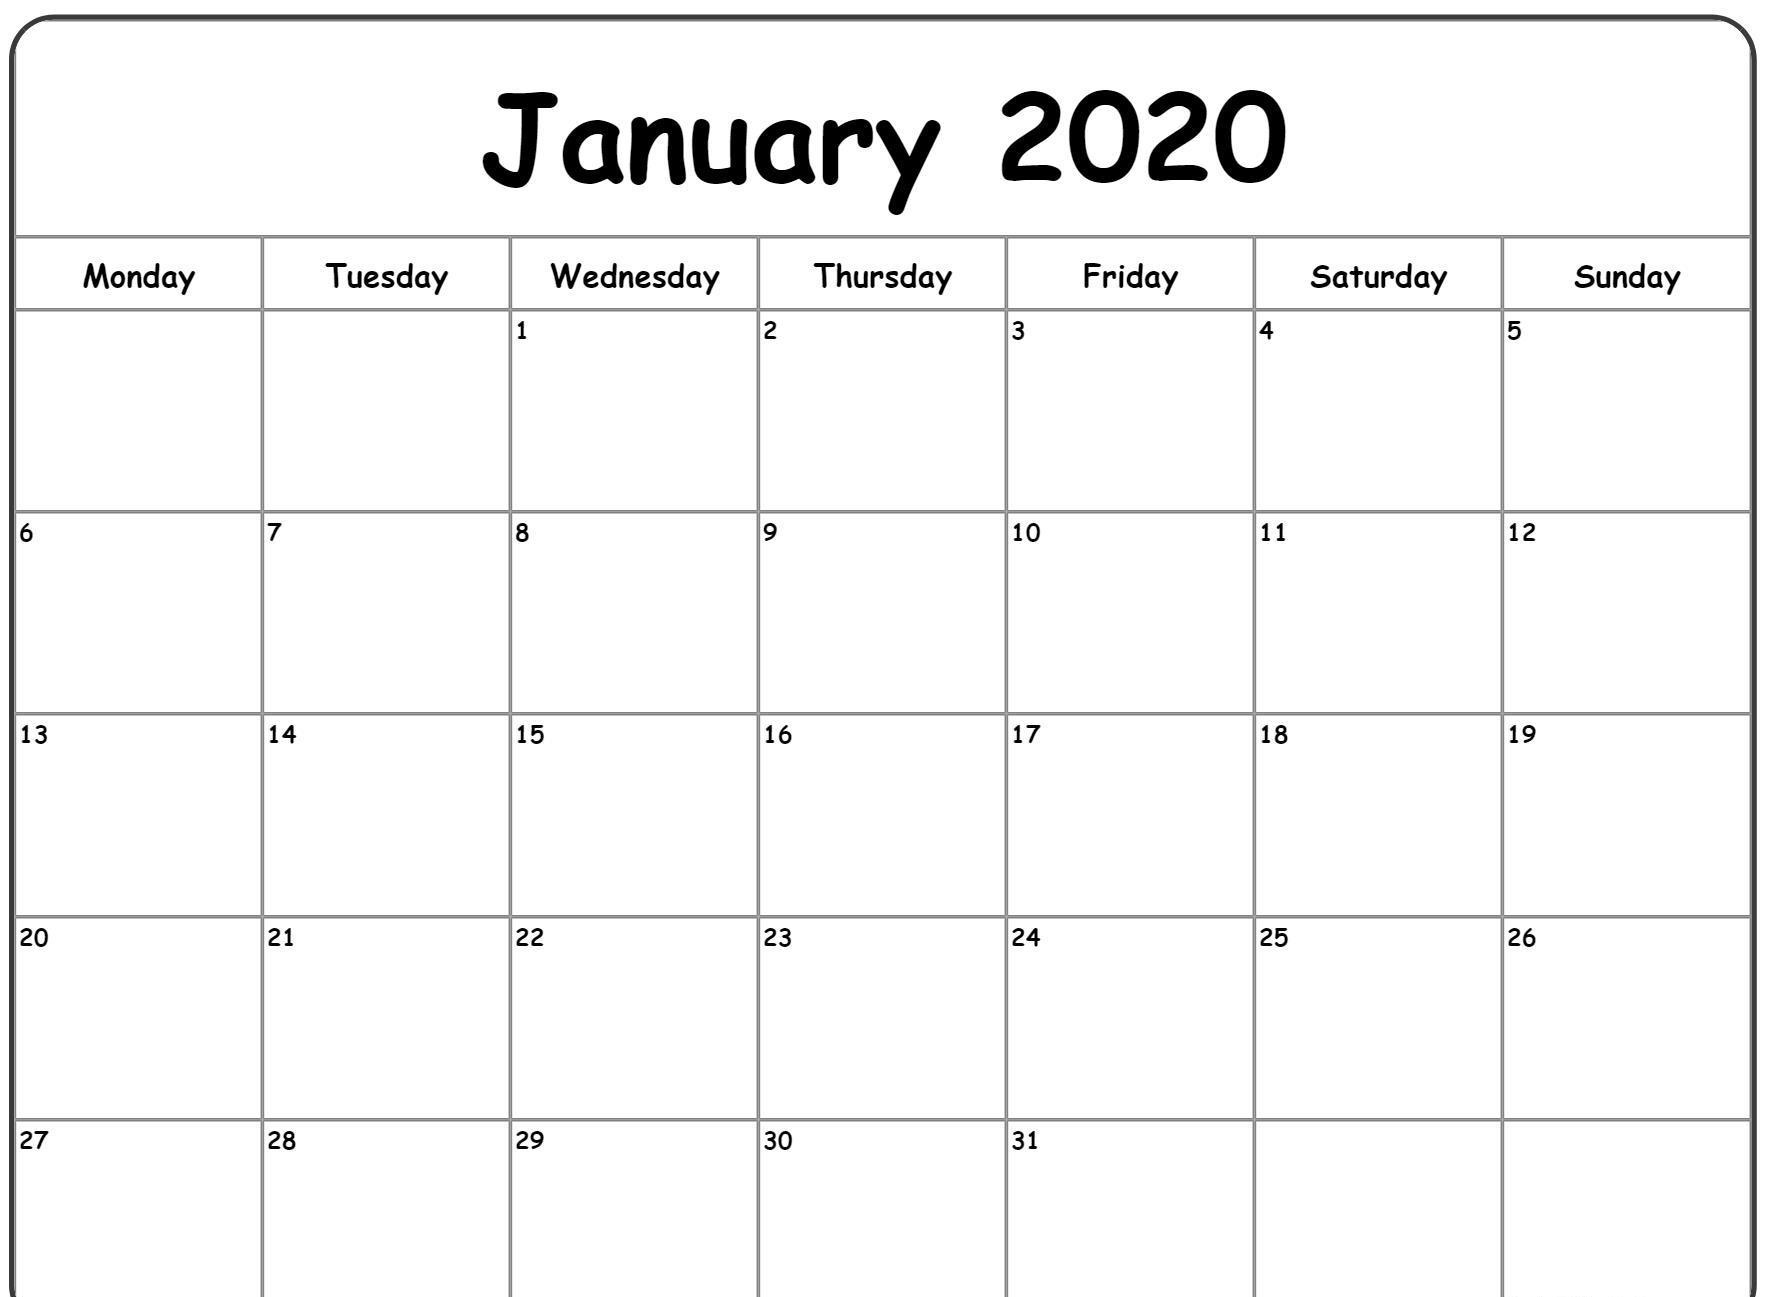 Free Blank January 2020 Calendar Printable Template With Notes throughout Calander January 2020